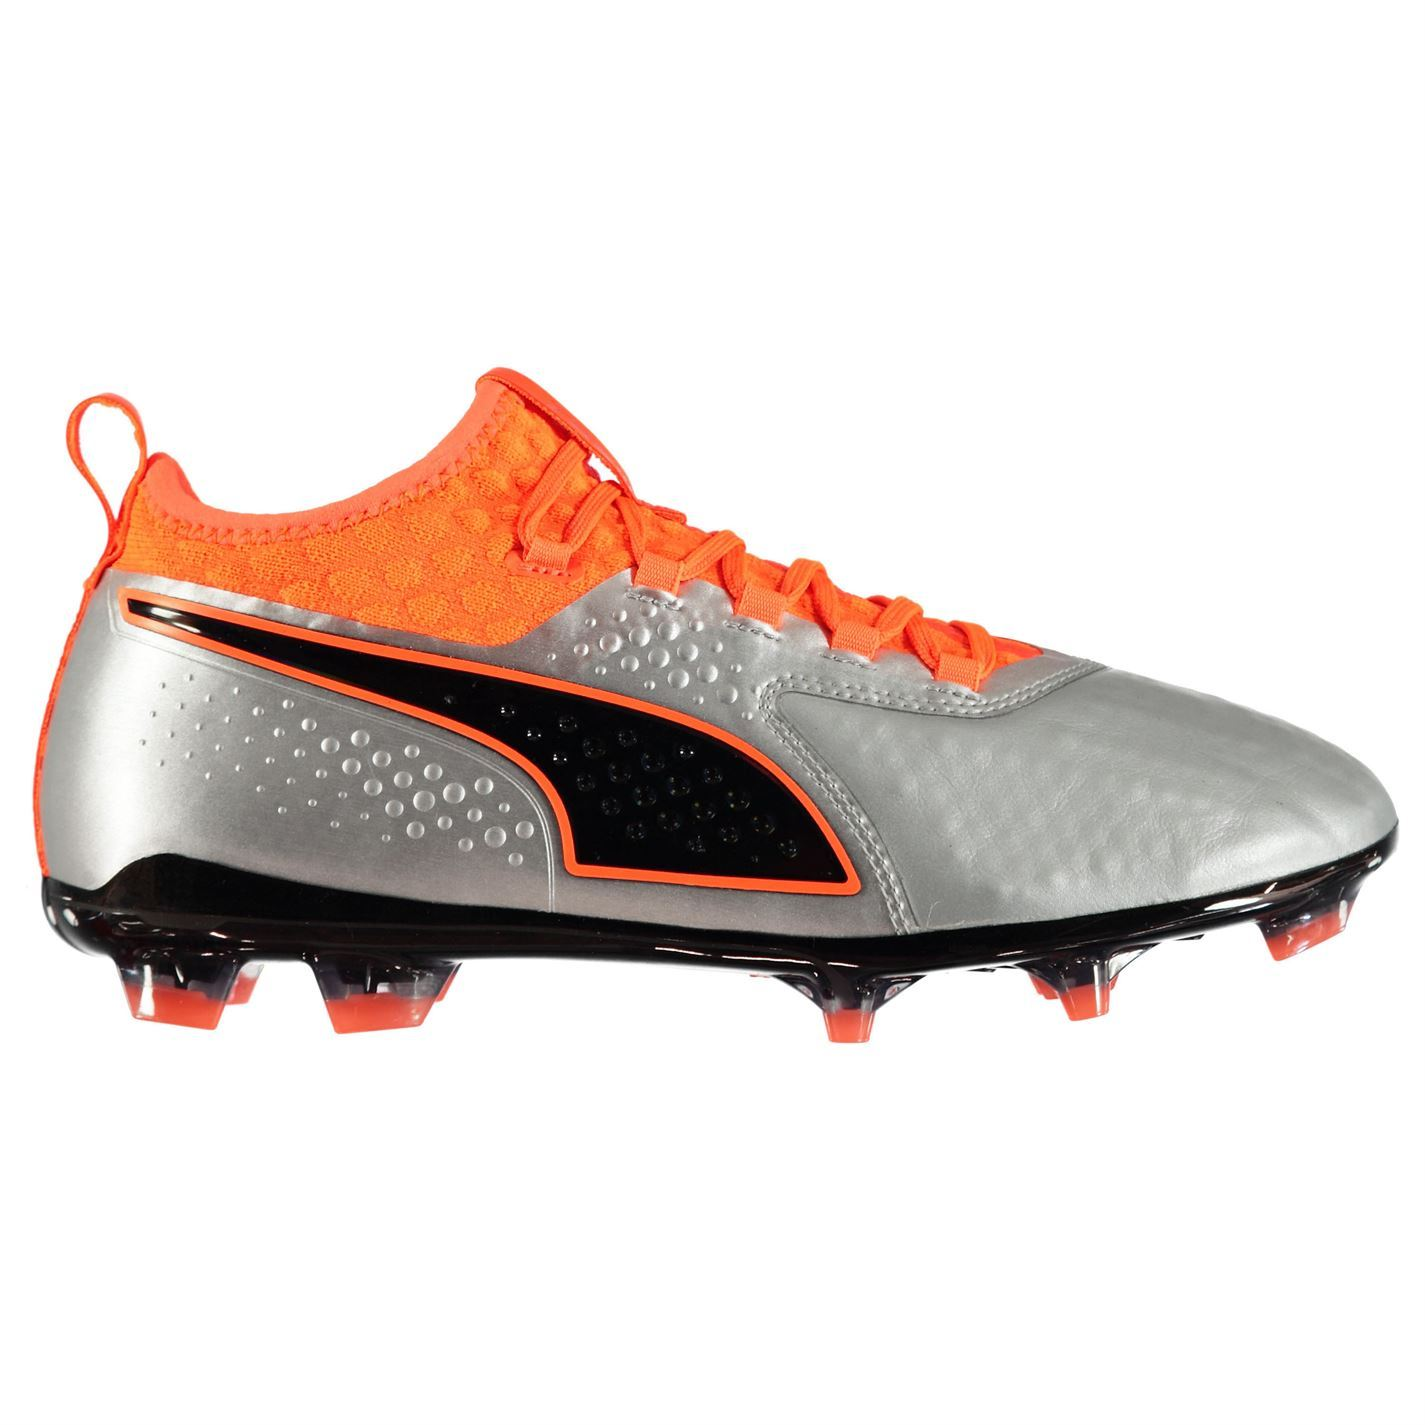 Puma ONE 2 FG Firm Ground Football Boots Mens Soccer Shoes Cleats  36b4db9464b2a